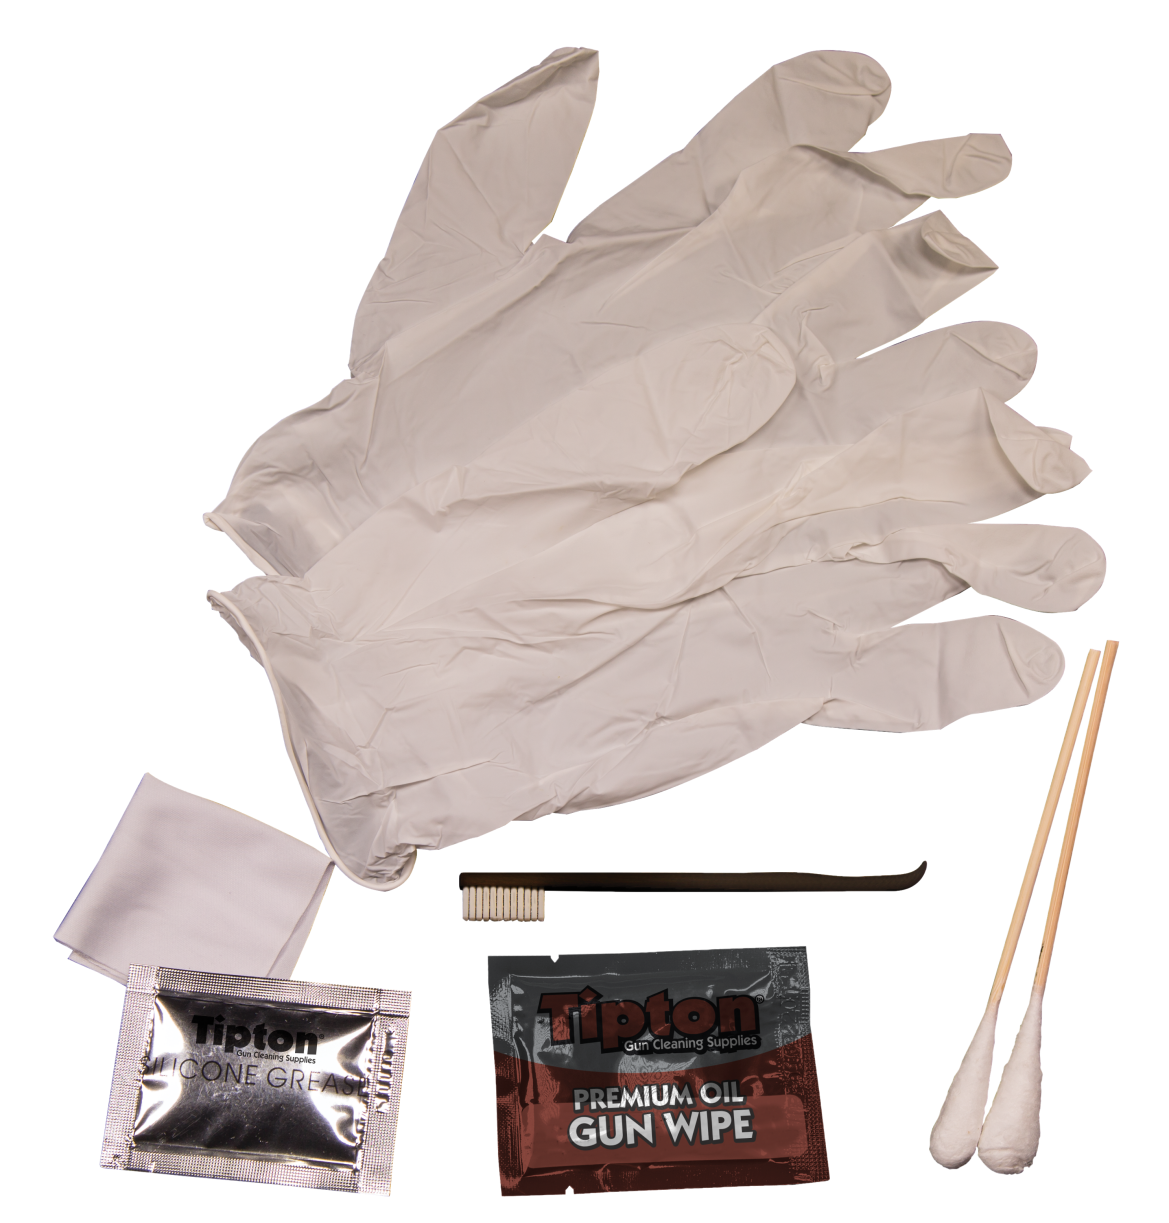 HANDGUN FIELD CLEANING KIT